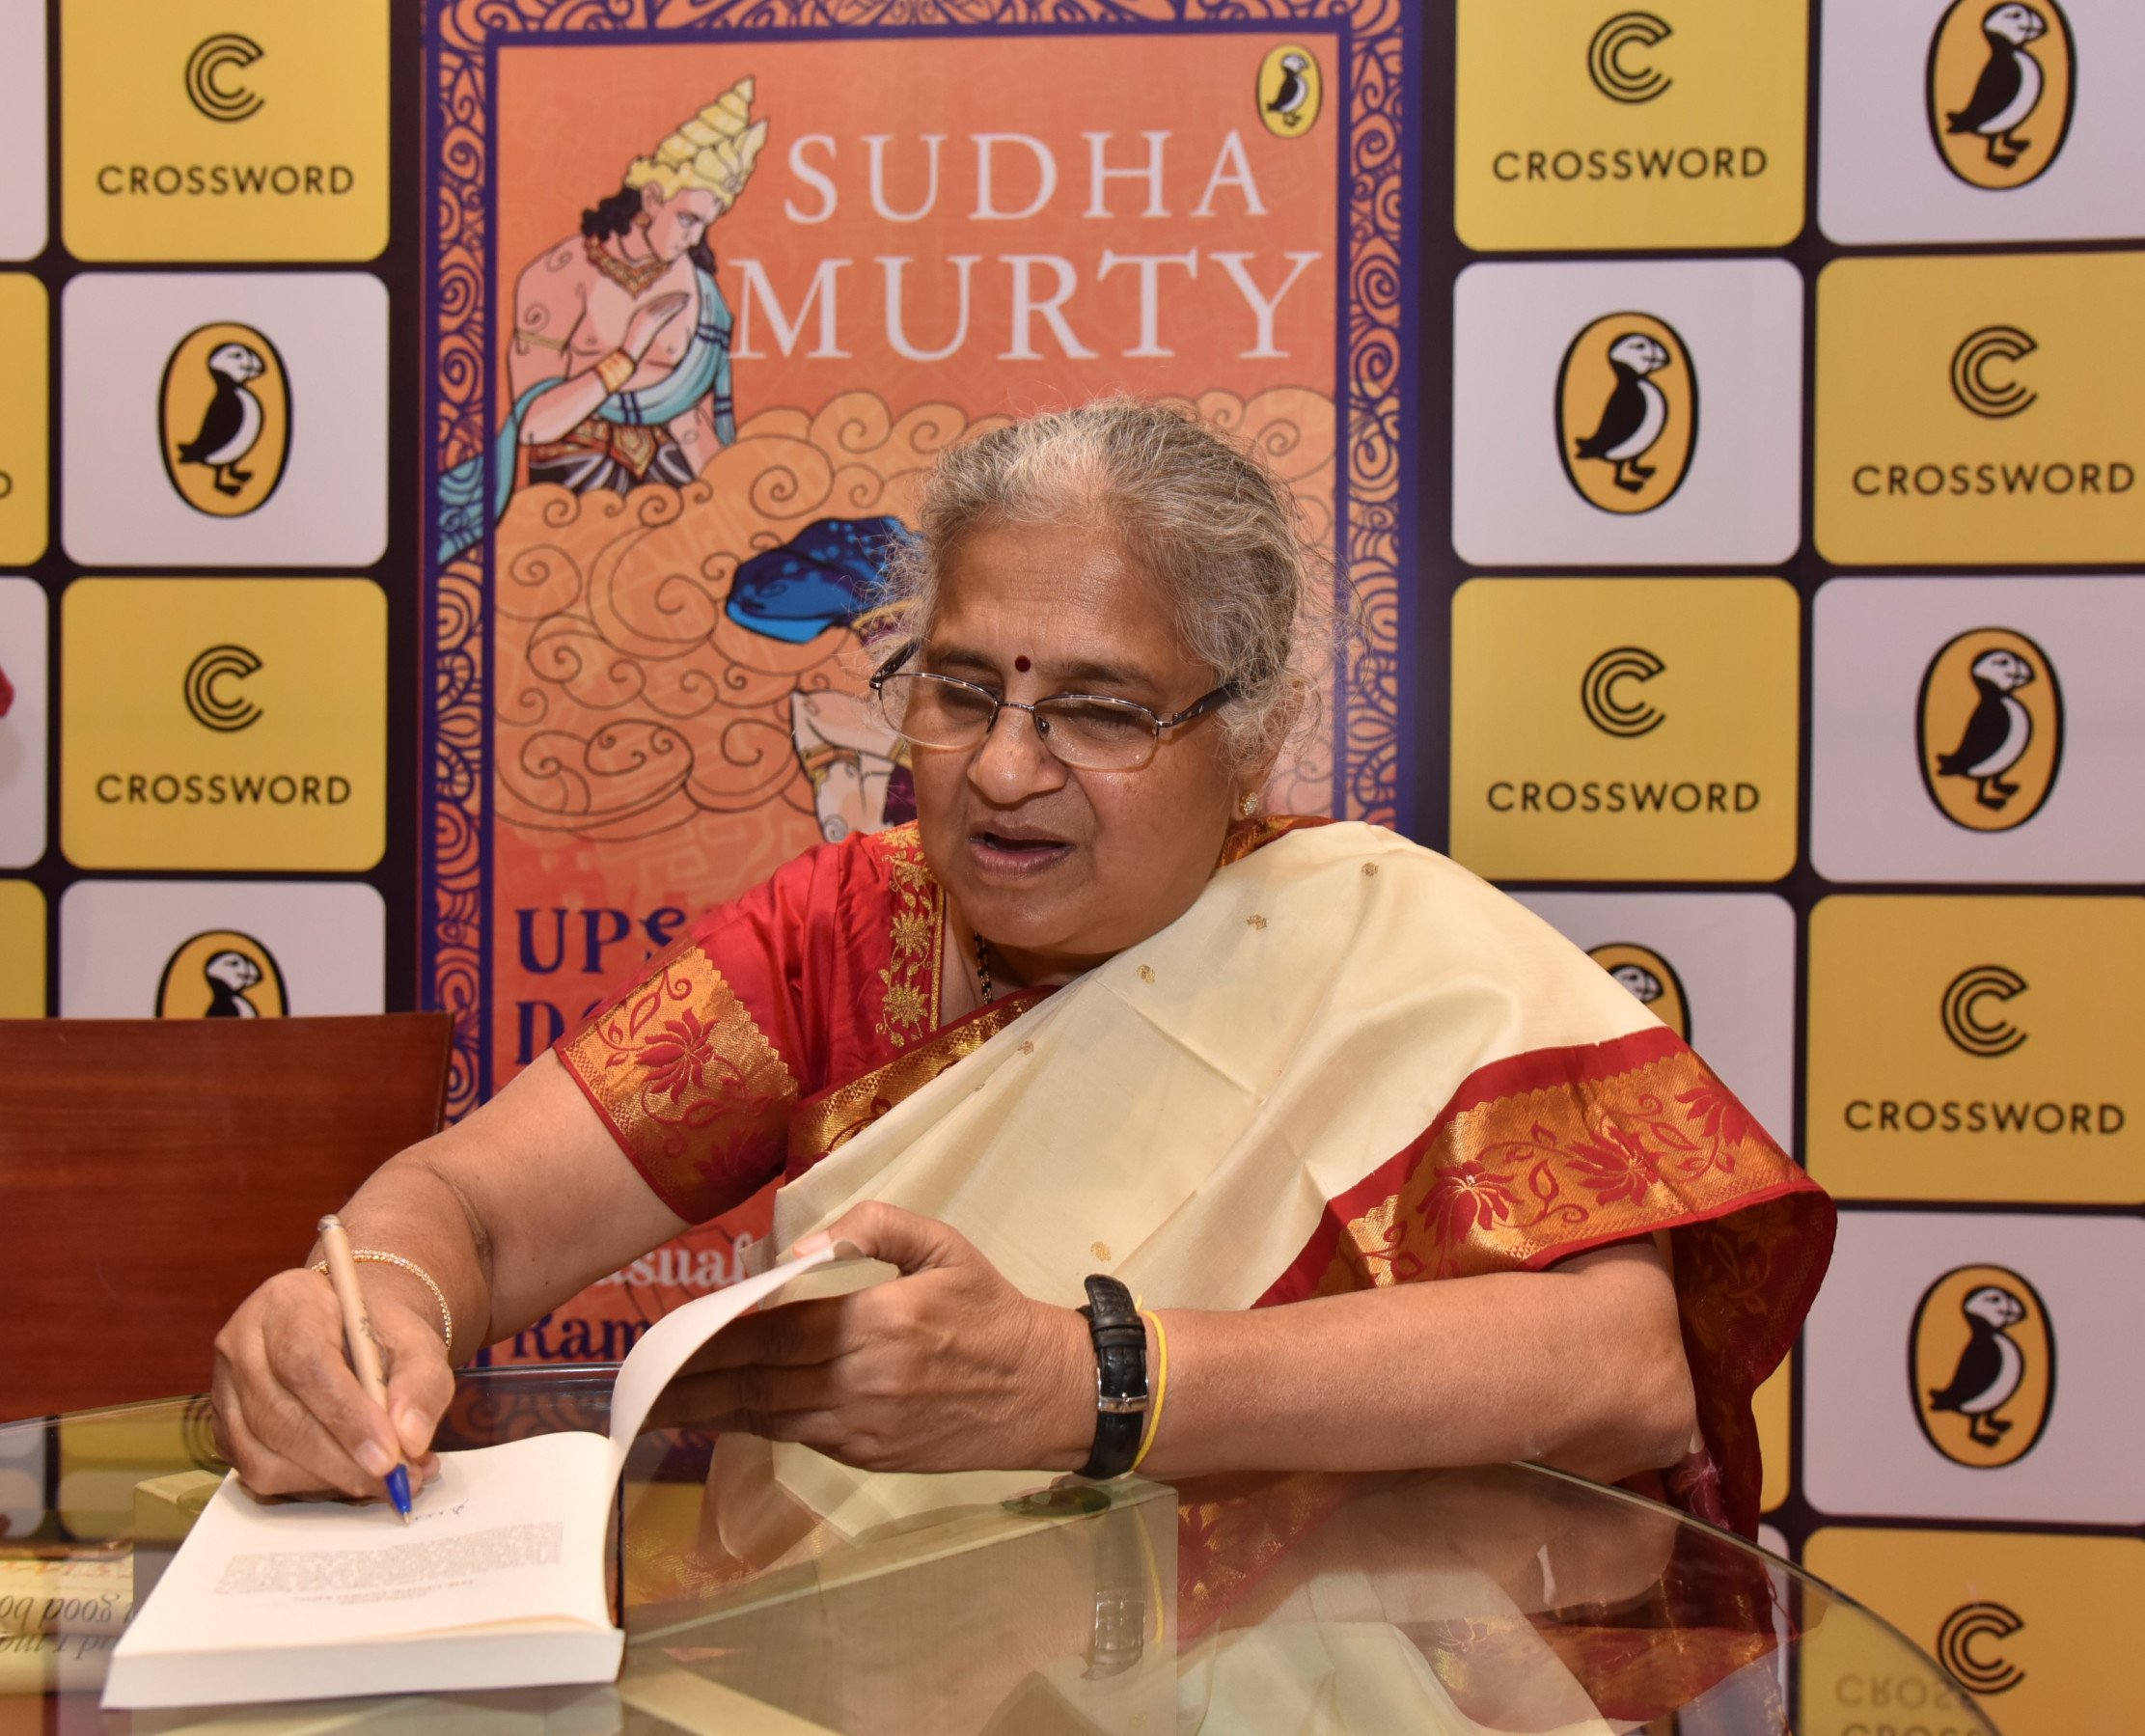 Crossword Bookstores and Puffin India launch Sudha Murty's 'The Upside Down King' in Mumbai